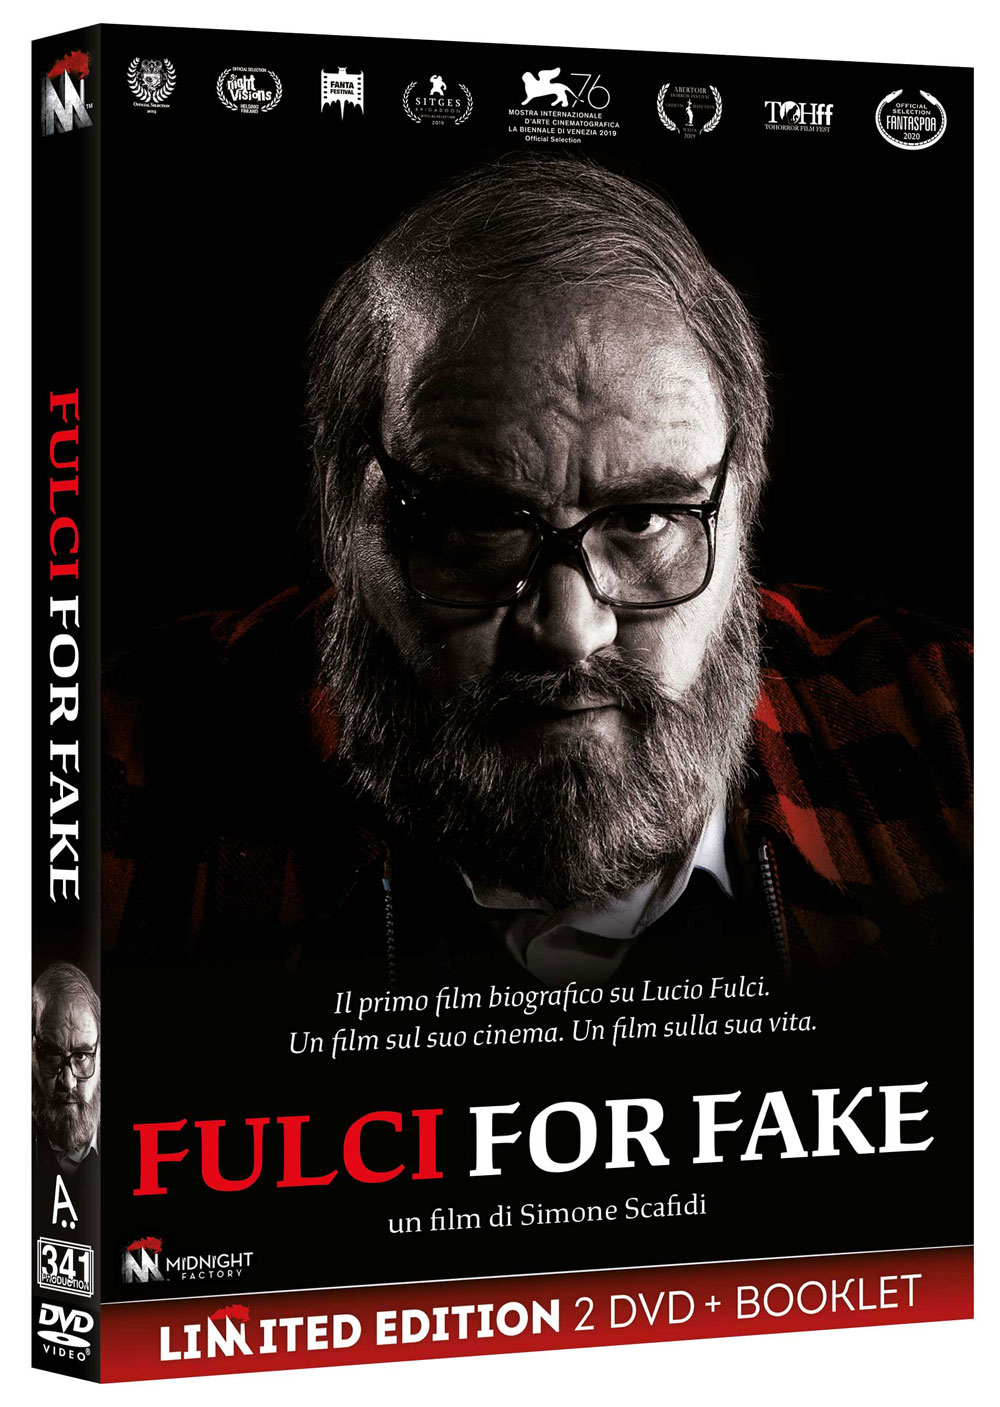 FULCI FOR FAKE (2 DVD+BOOKLET) (DVD)